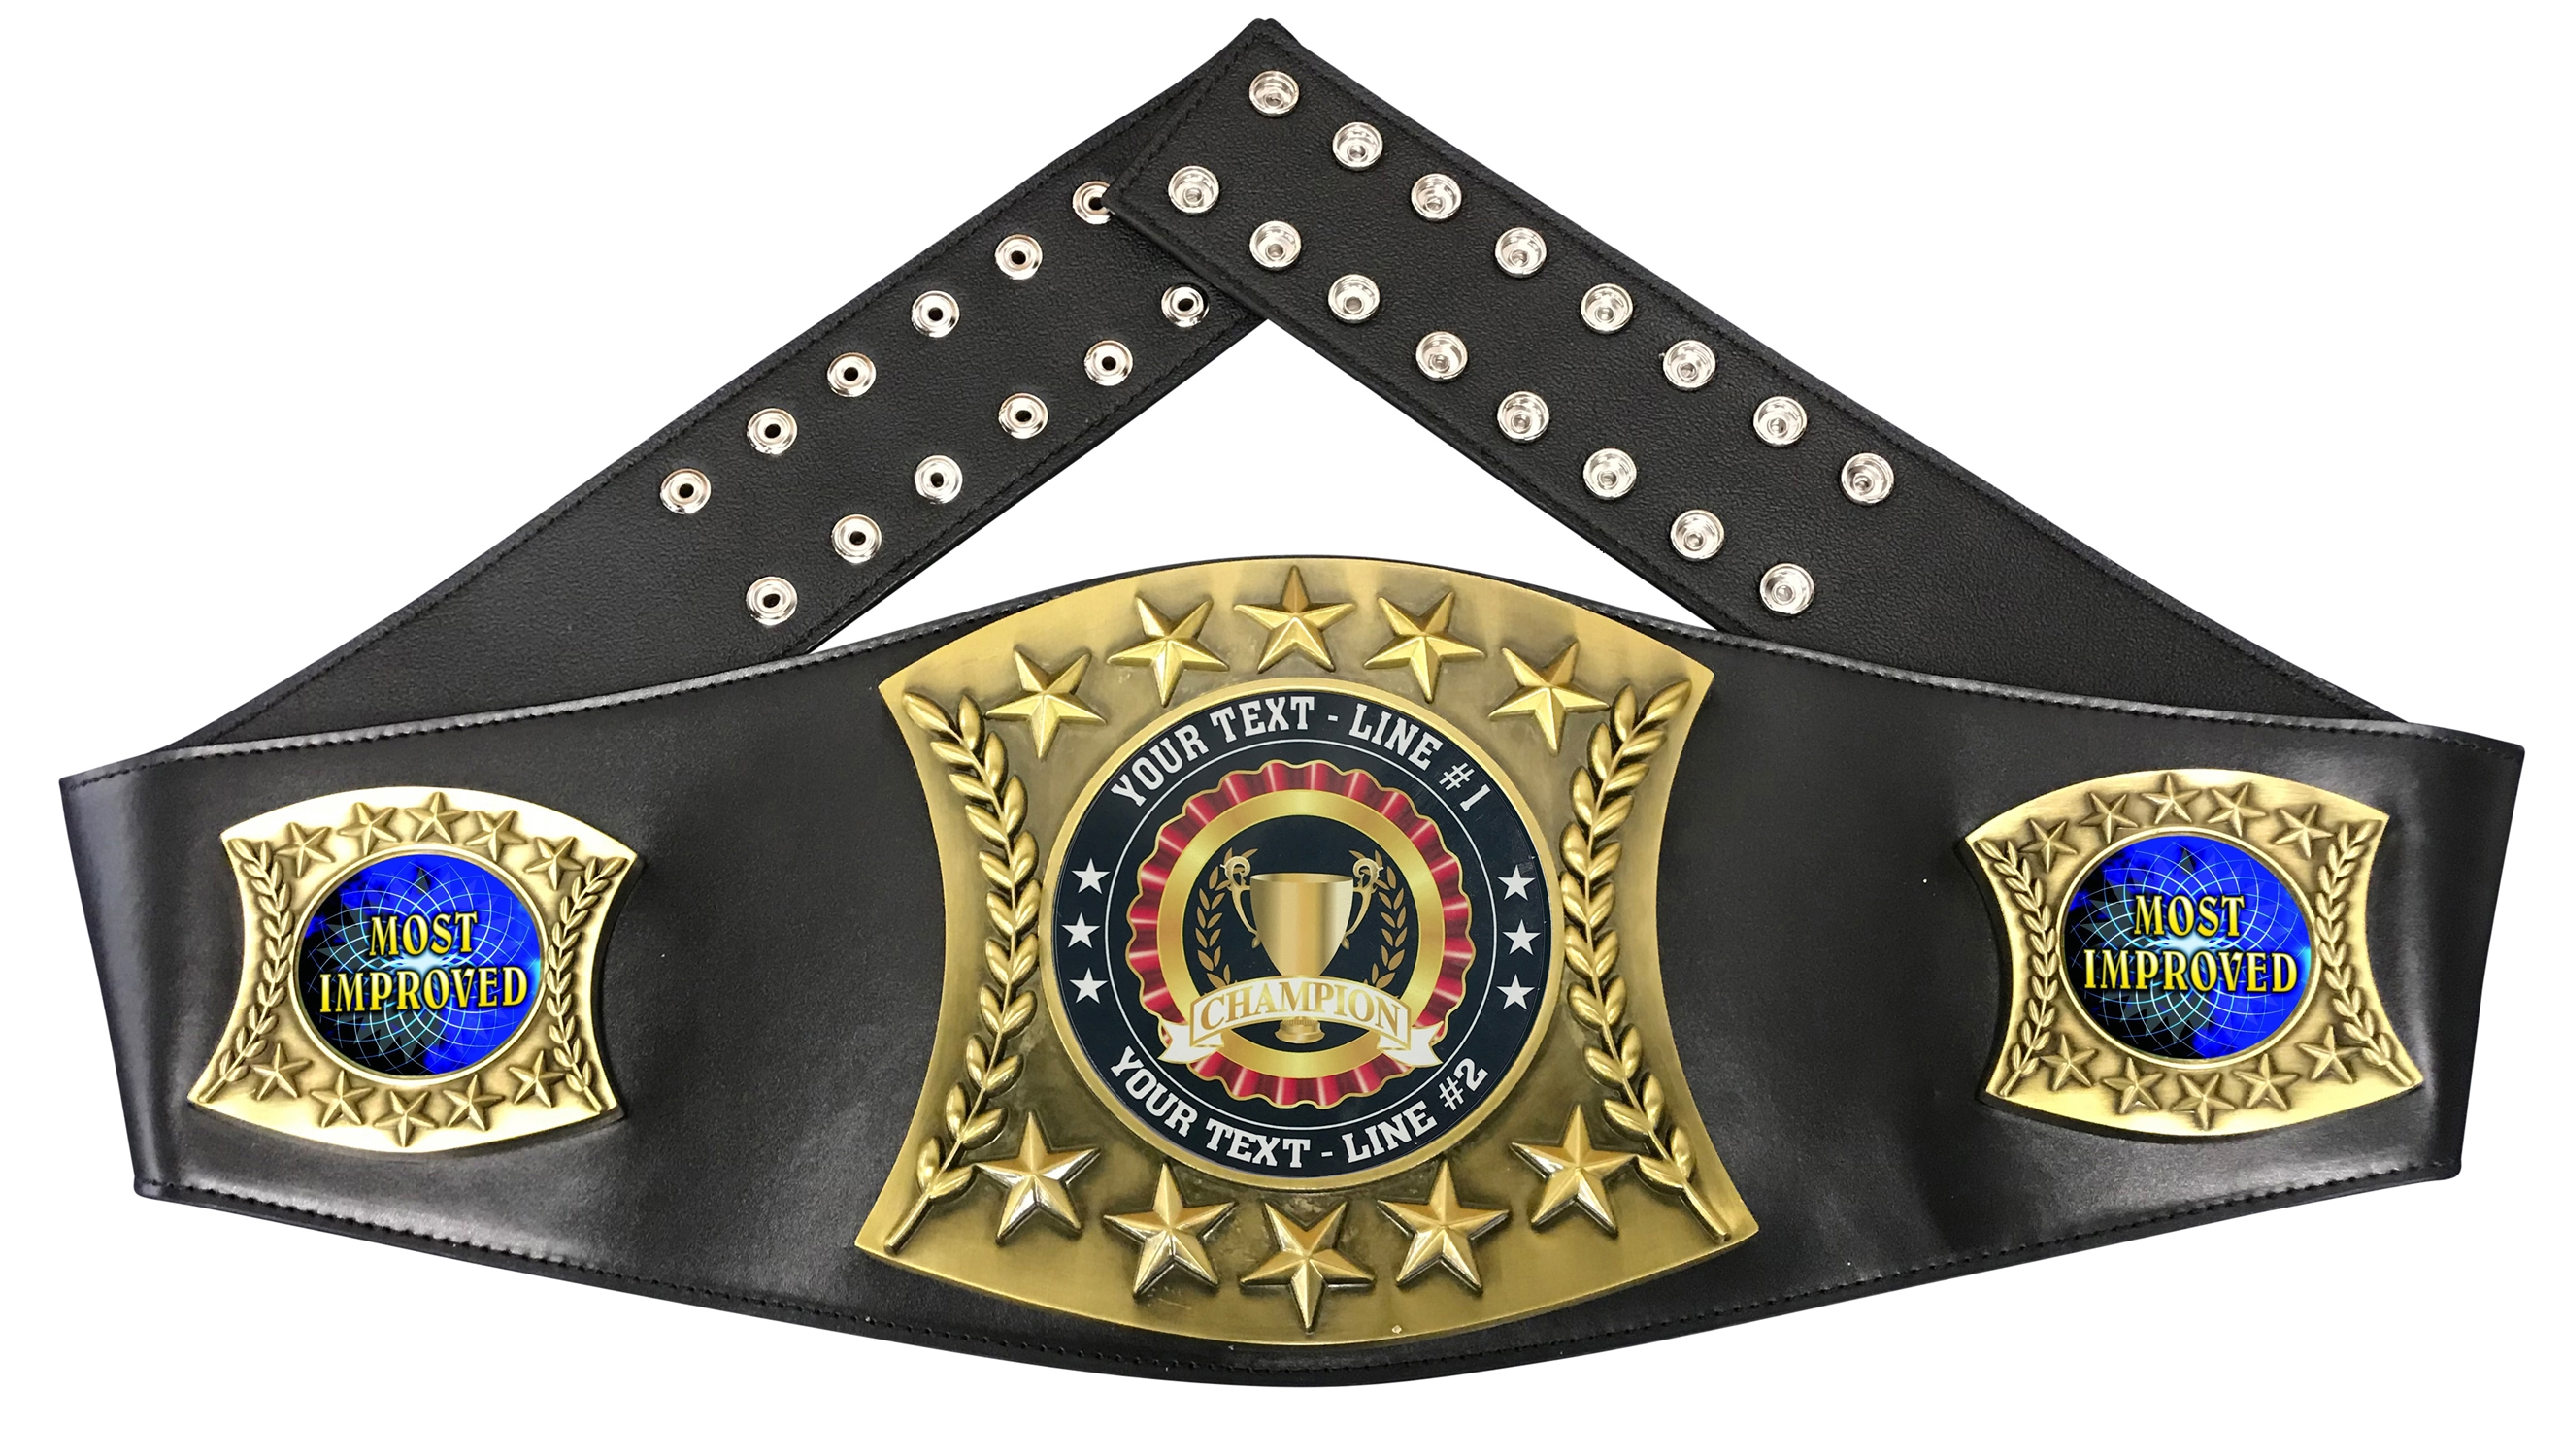 MIP Most Improved Personalized Championship Belt